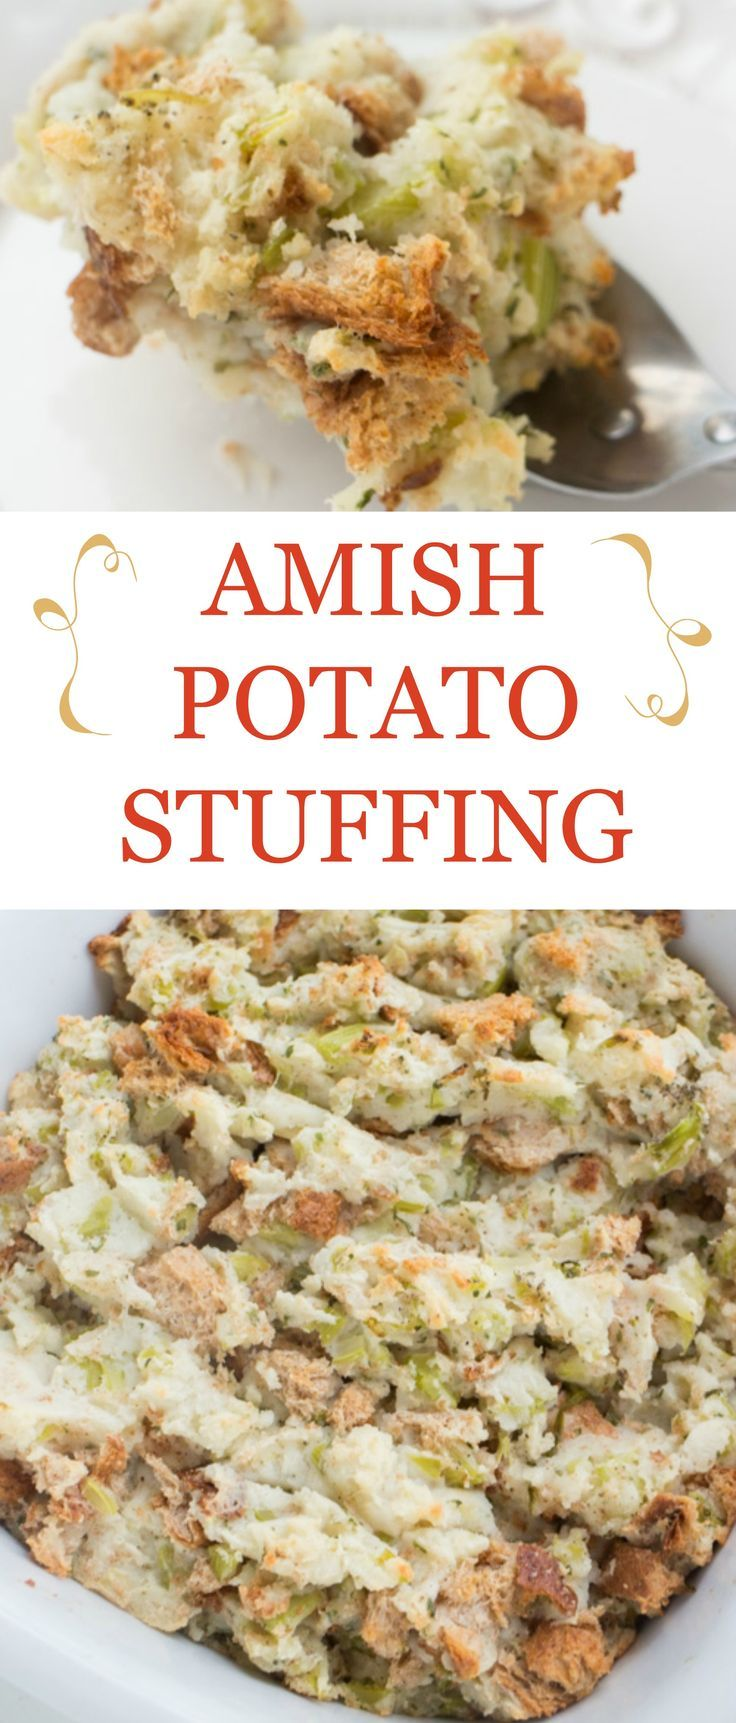 A delicious potato stuffing recipe, just like the Amish make it in Pennsylvania Dutch country.